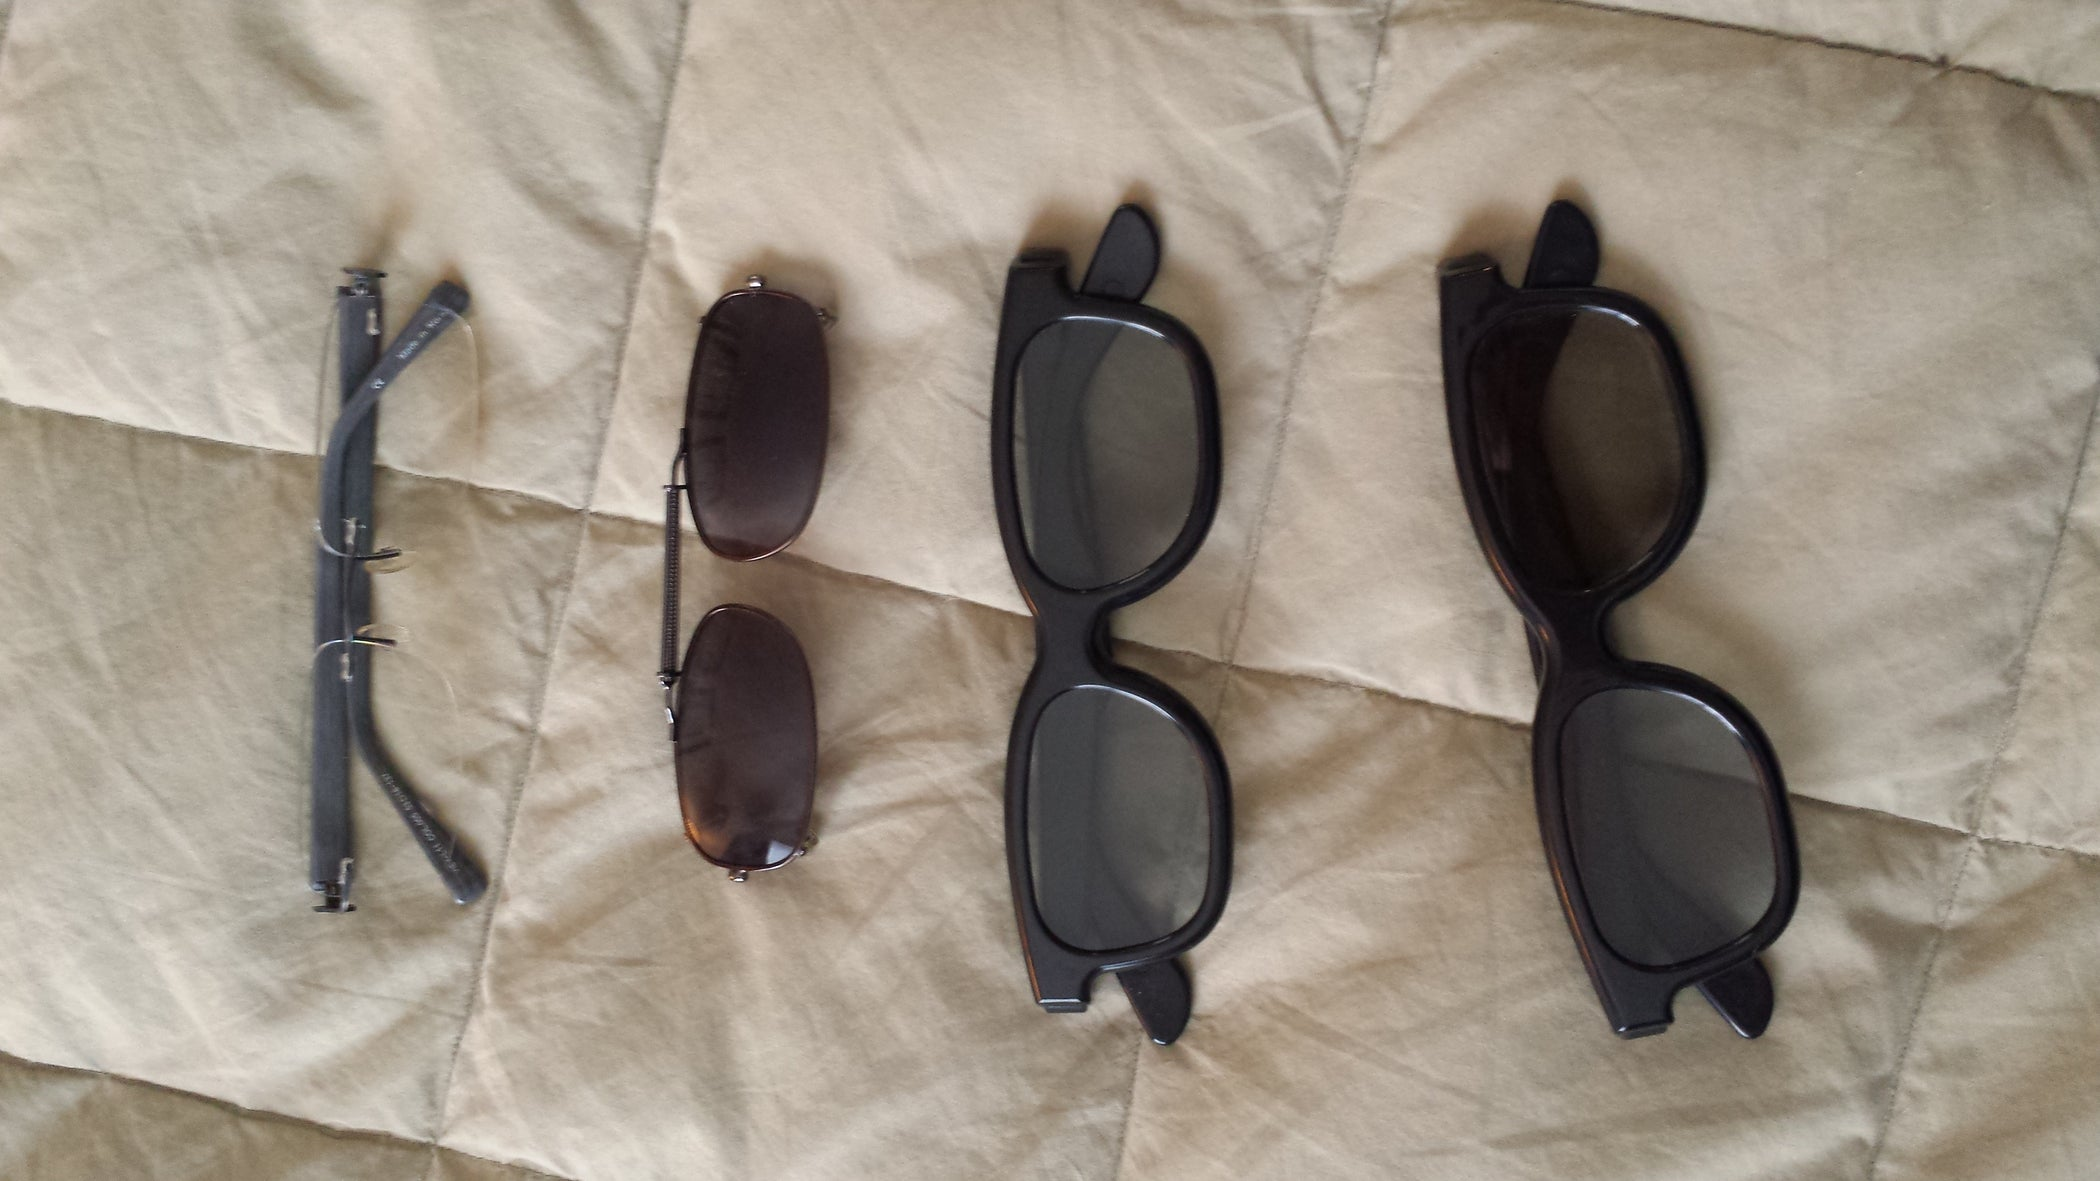 feeb9f8088e69 3D Clips for Prescription Glasses  4 Steps (with Pictures)